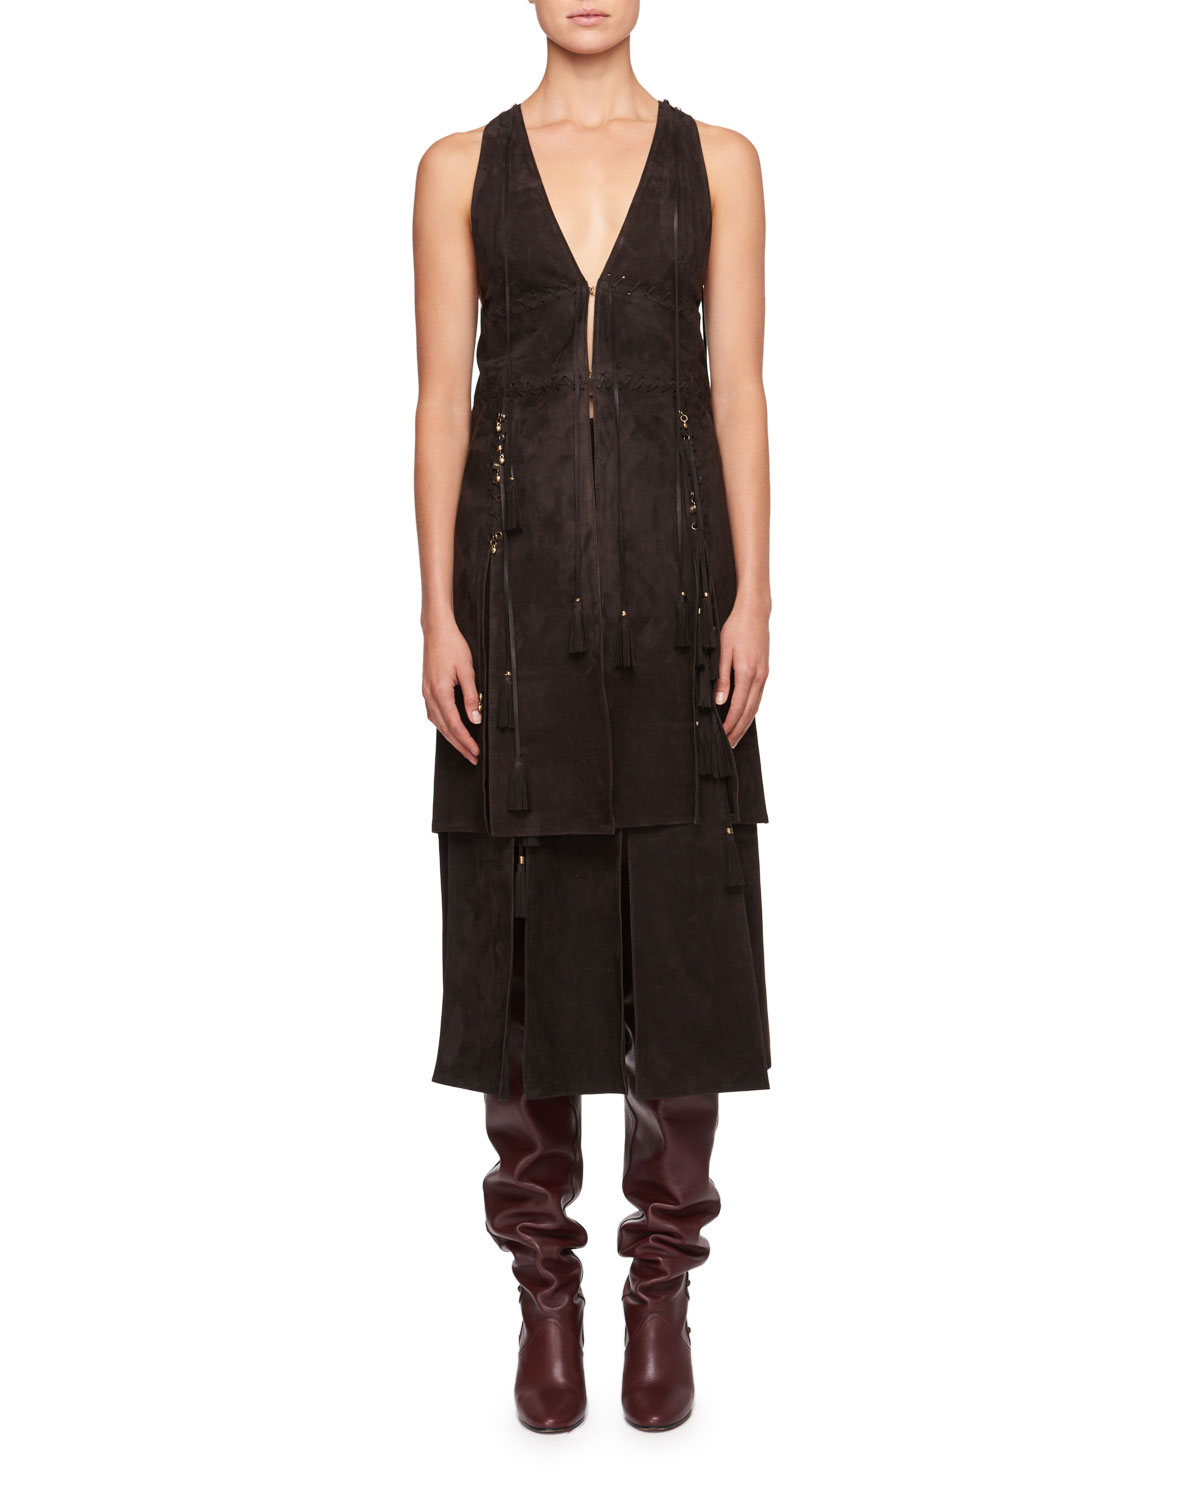 Sleeveless Suede Waistcoat with Lacing Charms